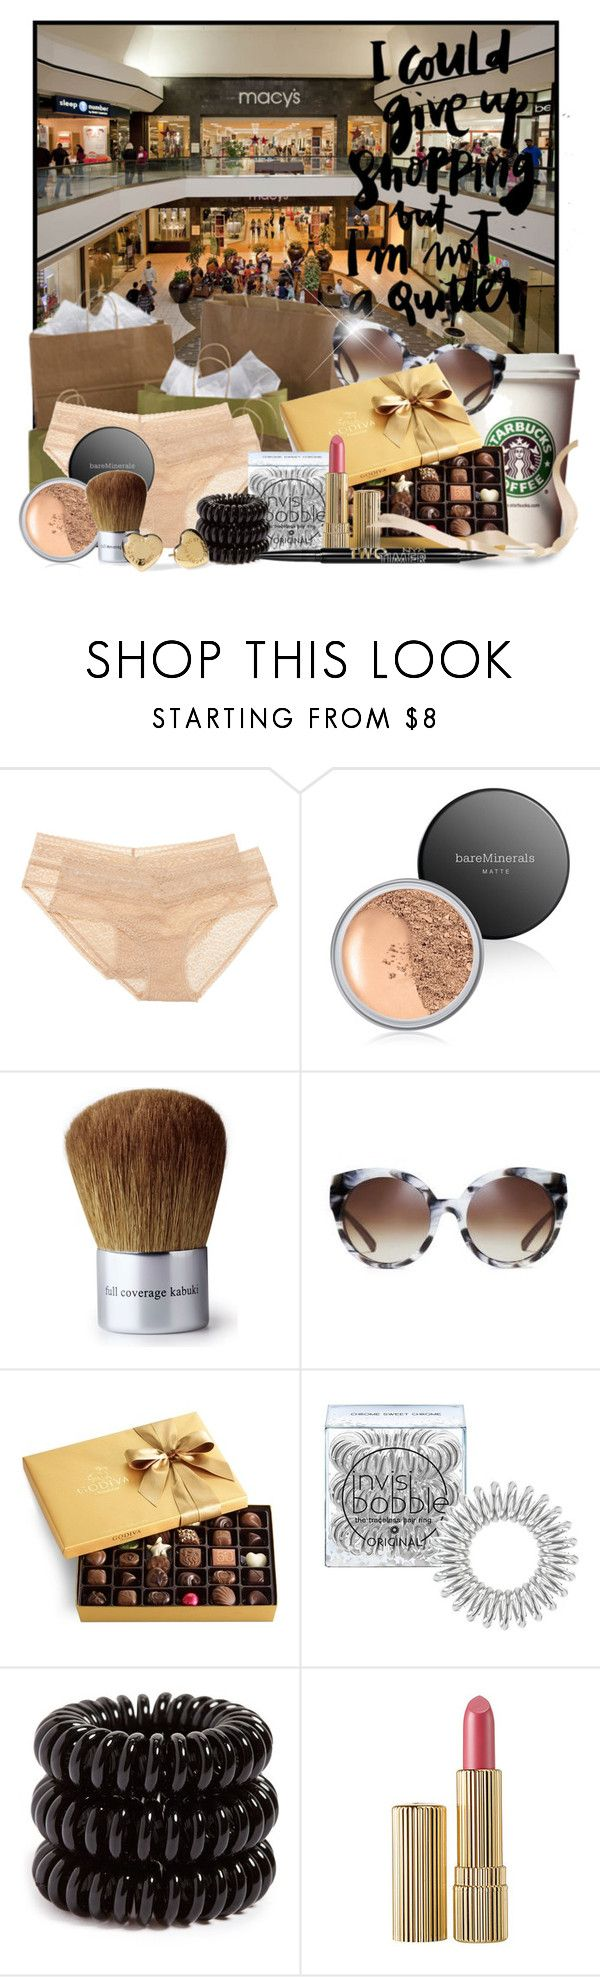 """Things I love about home: Shopping"" by doozer ❤ liked on Polyvore featuring Calvin Klein Underwear, Bare Escentuals, Michael Kors, Godiva, Invisibobble, Marc by Marc Jacobs, Estée Lauder and Charlotte Russe"